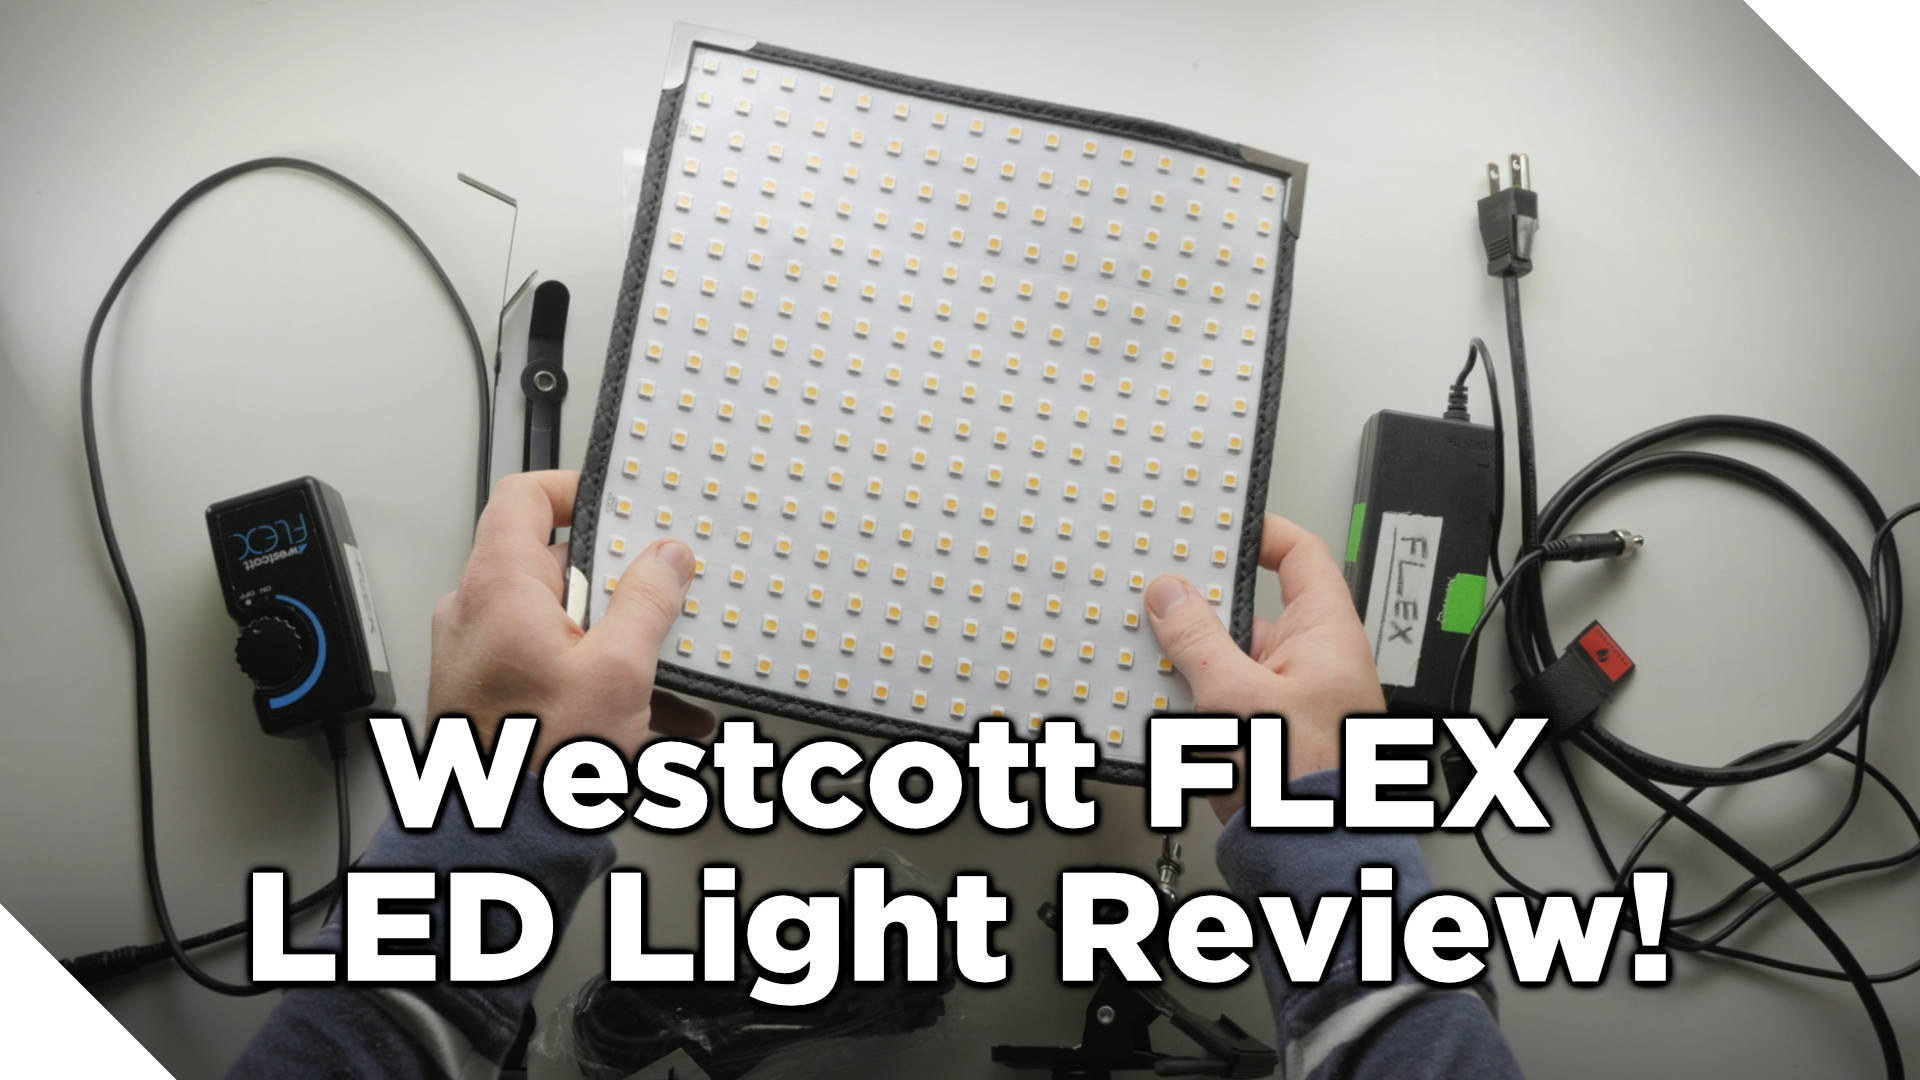 Westcott FLEX LED Light Review